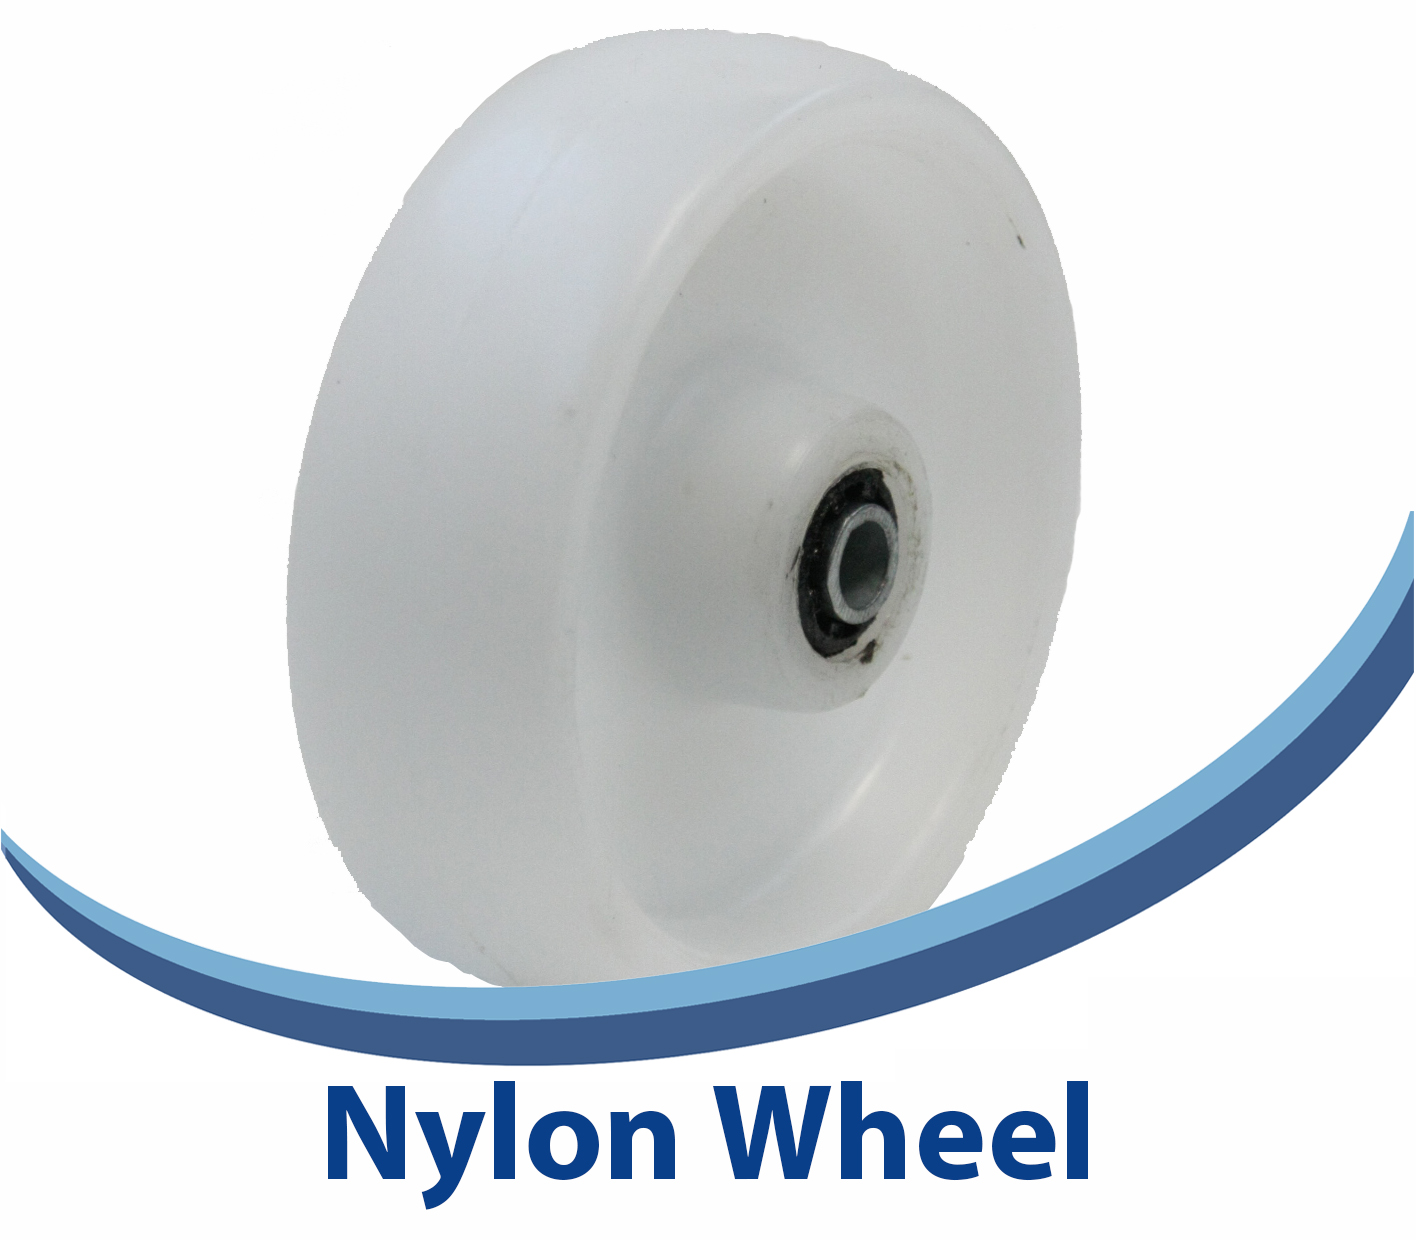 Nylon Wheels